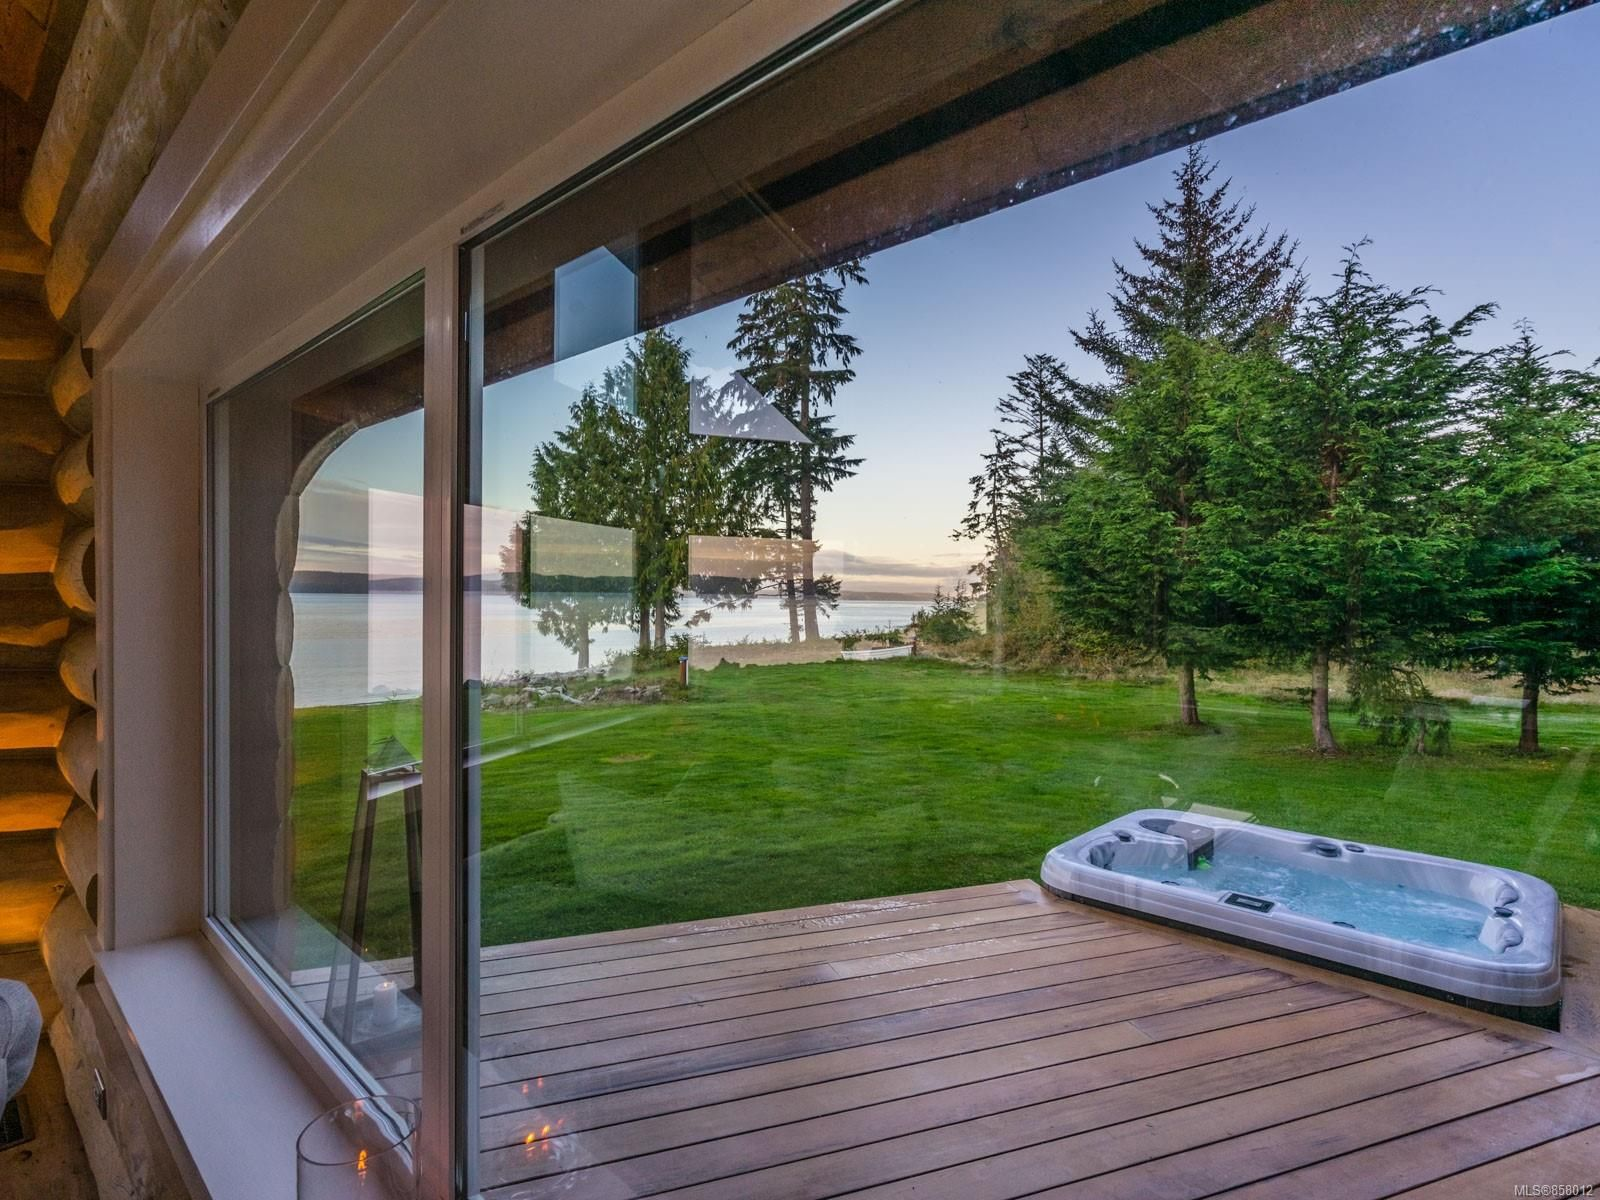 Photo 32: Photos: 6030 MINE Rd in : NI Port McNeill House for sale (North Island)  : MLS®# 858012